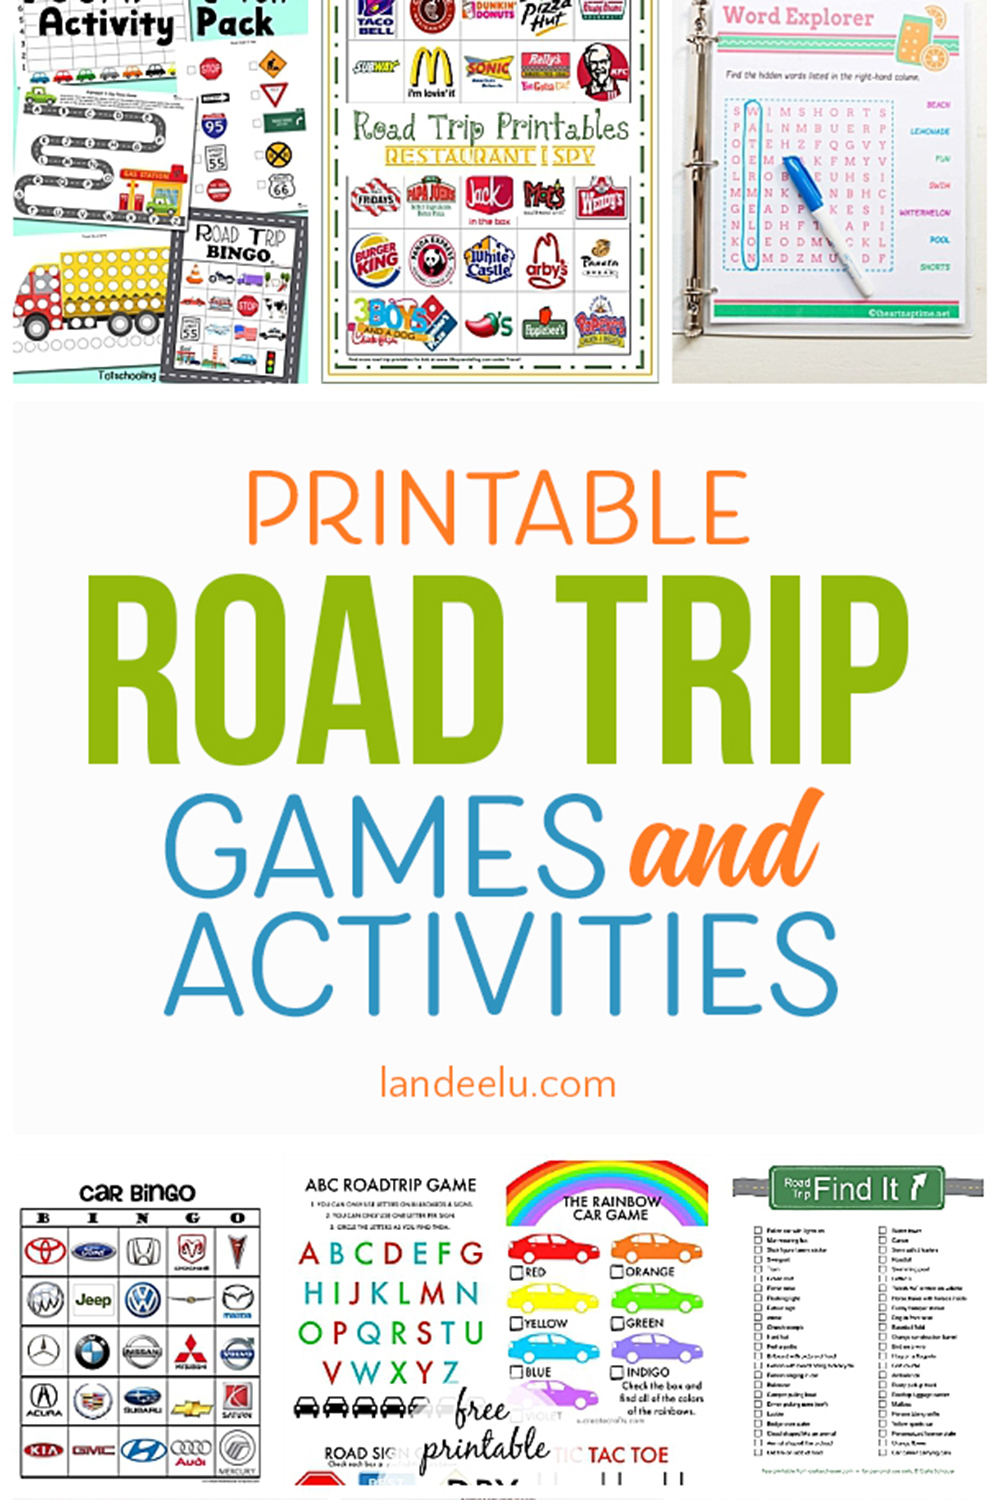 It's just a photo of Printable Games for Kids for kindergarten